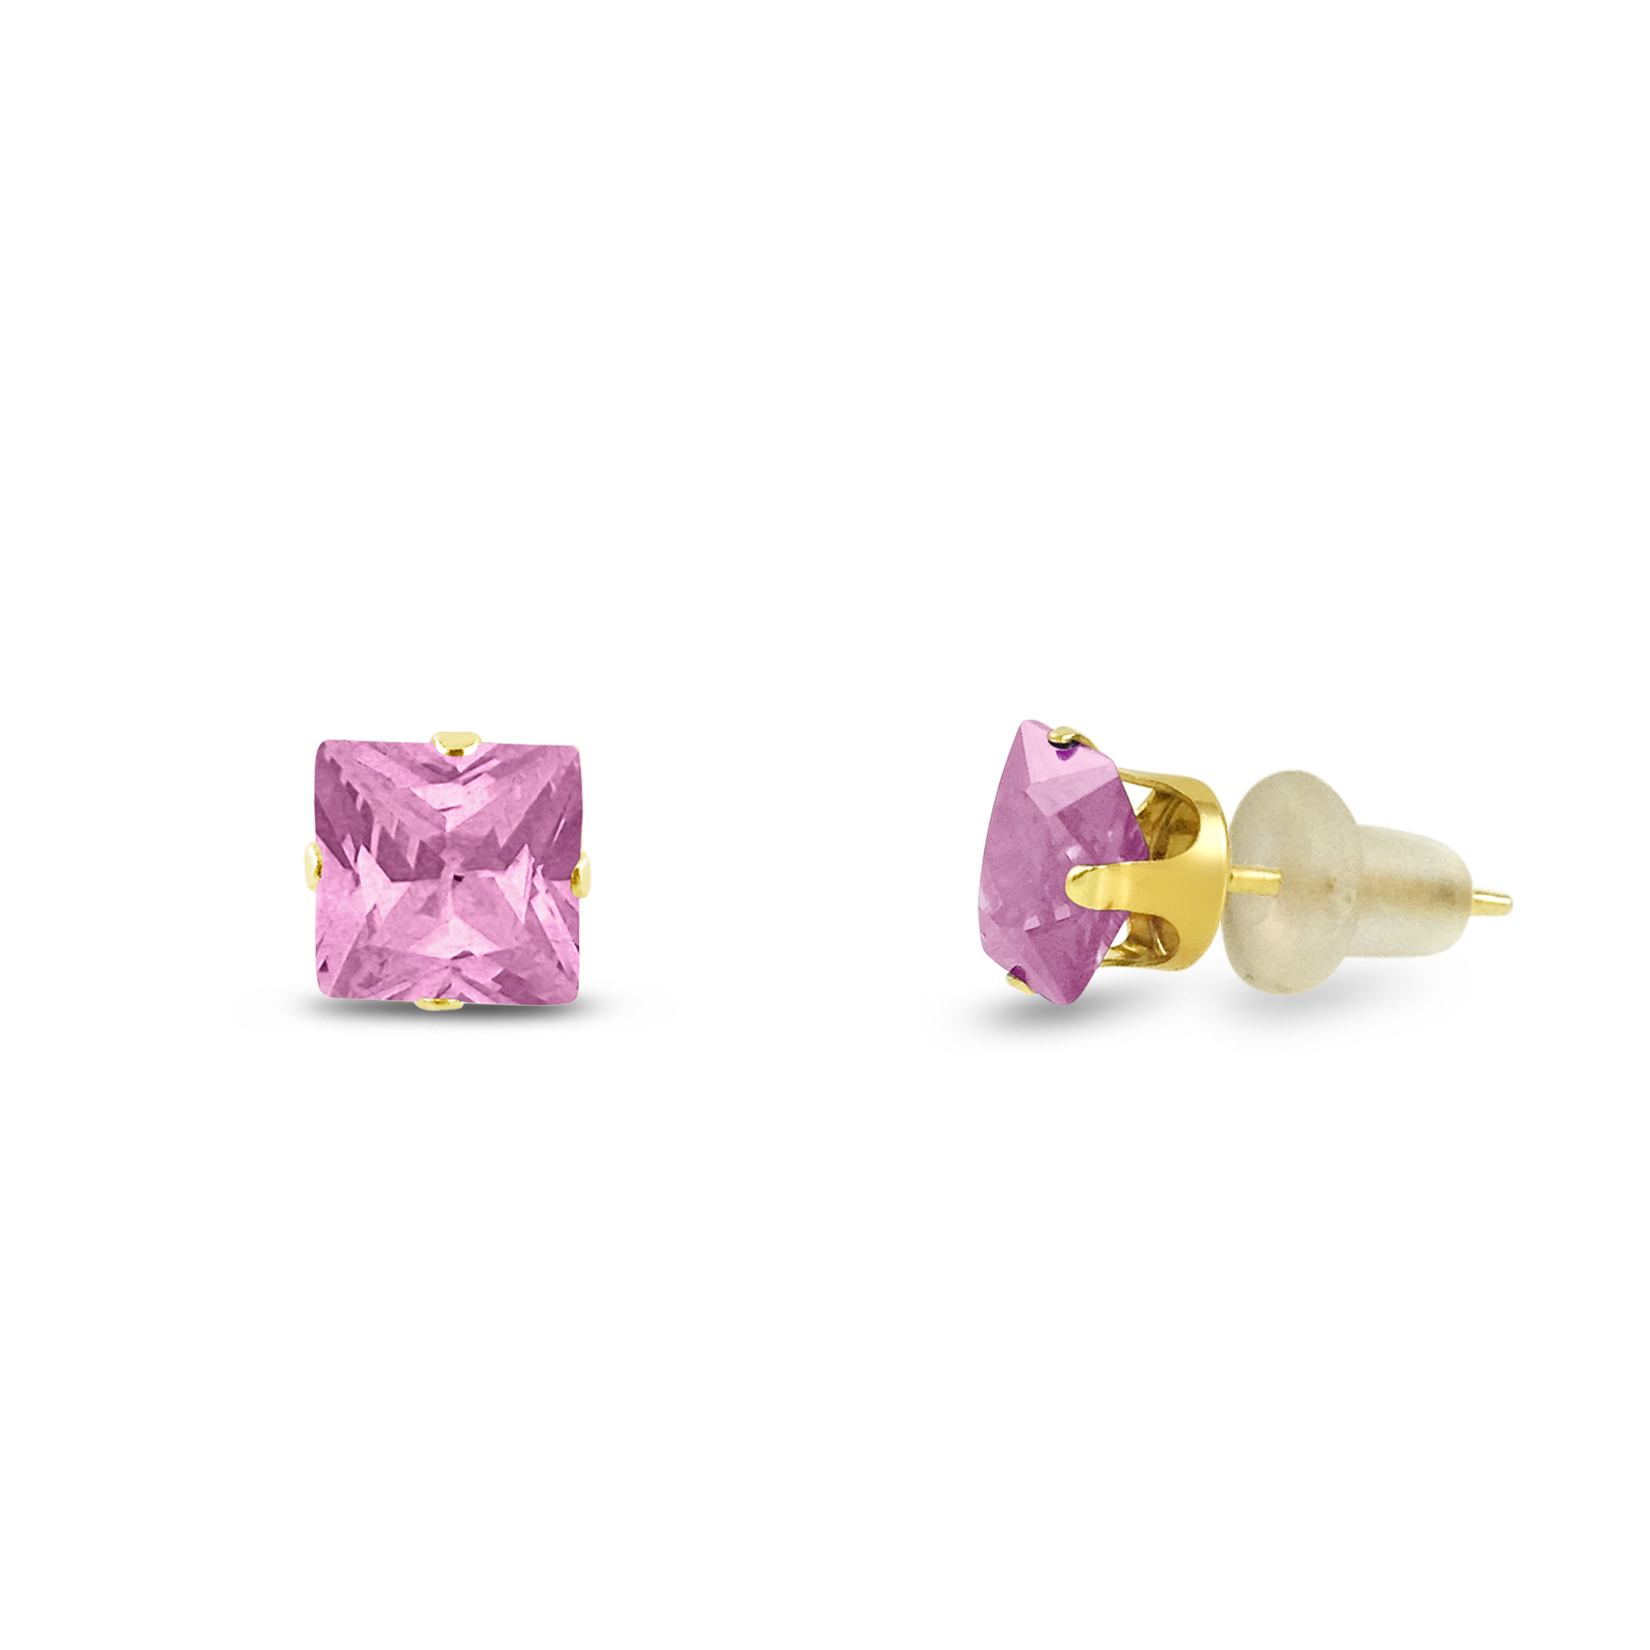 2x2mm Square Princess Cut Pink Cubic Zirconia Solid 10K Yellow Gold 4-Prong Set Baby Stud Earrings by Kezef Creations